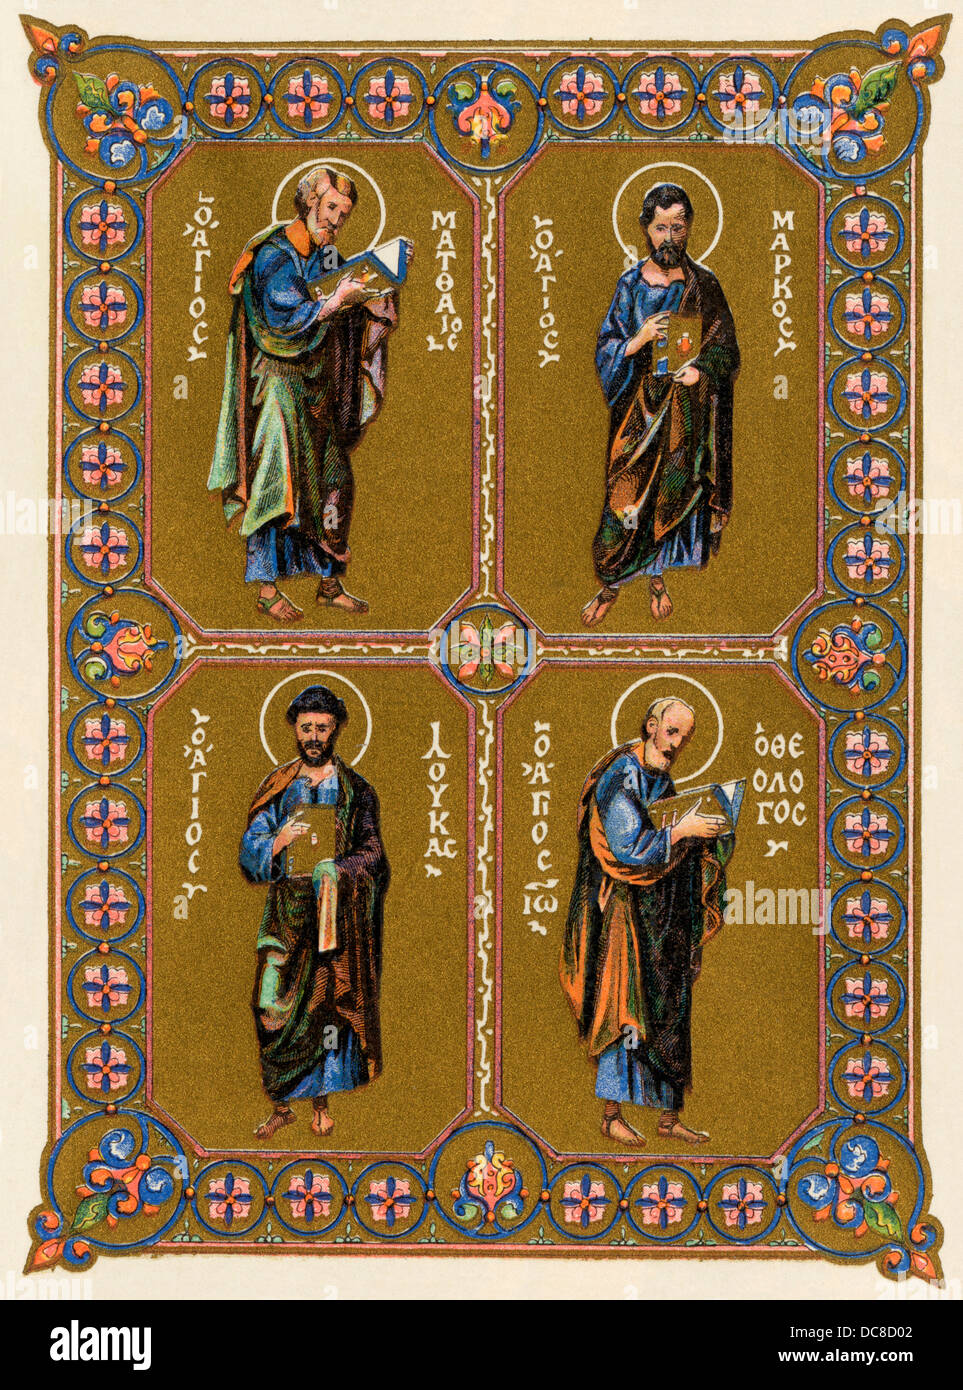 Evangelists Matthew, Mark, Luke, and John depicted in a Greek miniature from the 11th century. Color lithograph - Stock Image